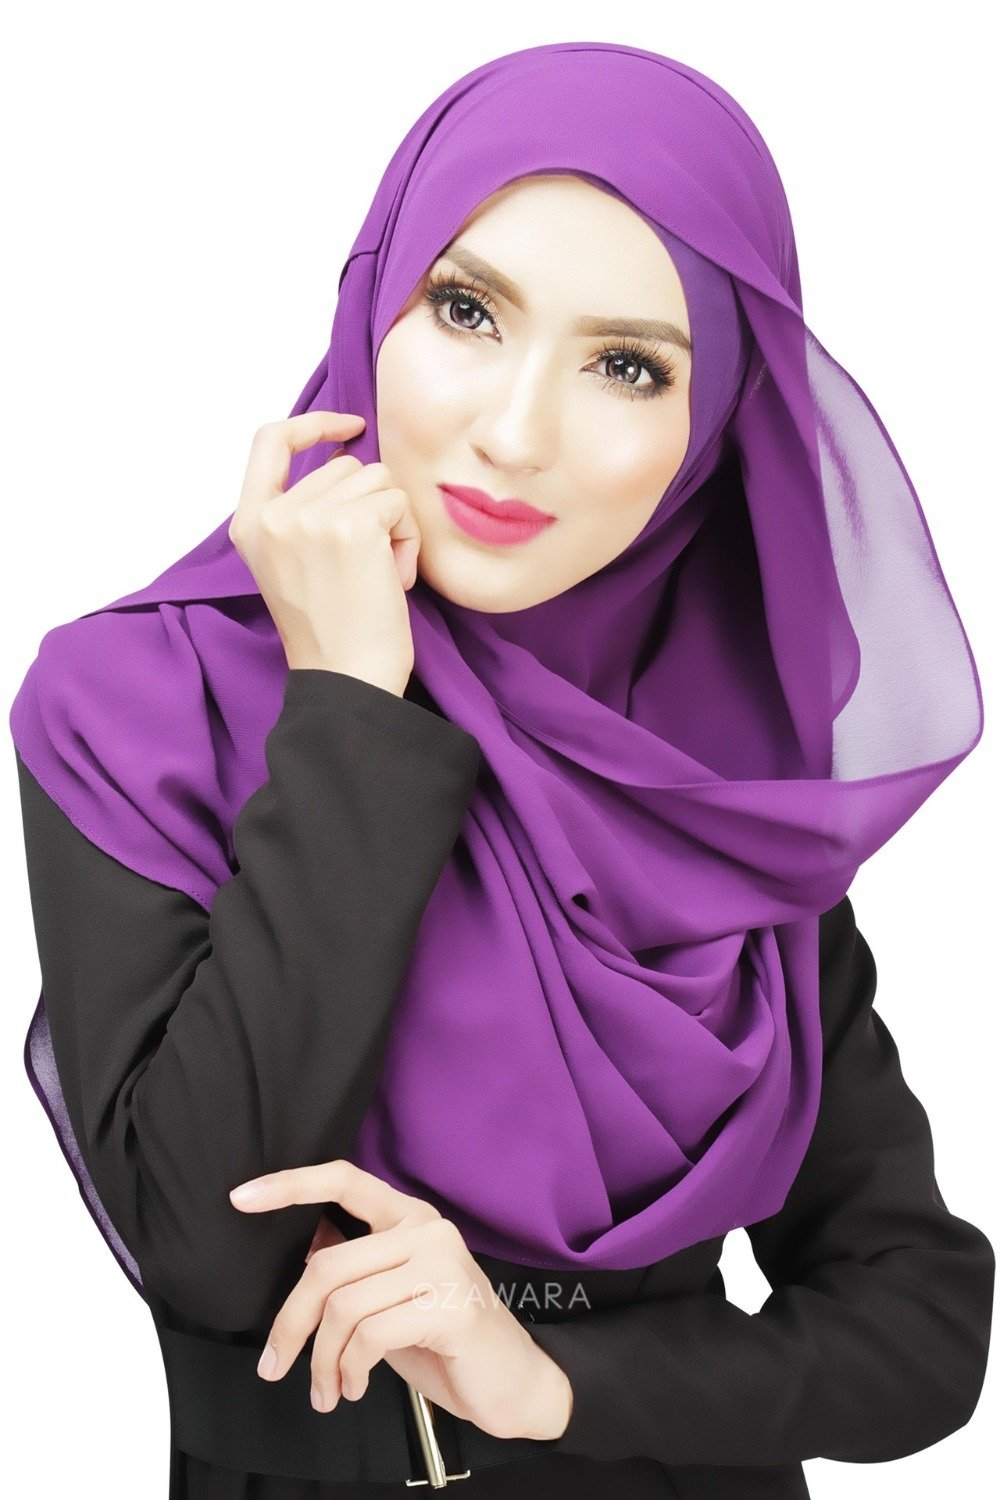 twitpic hijab on twitter quot̯͡ twitpichijab bunda bella